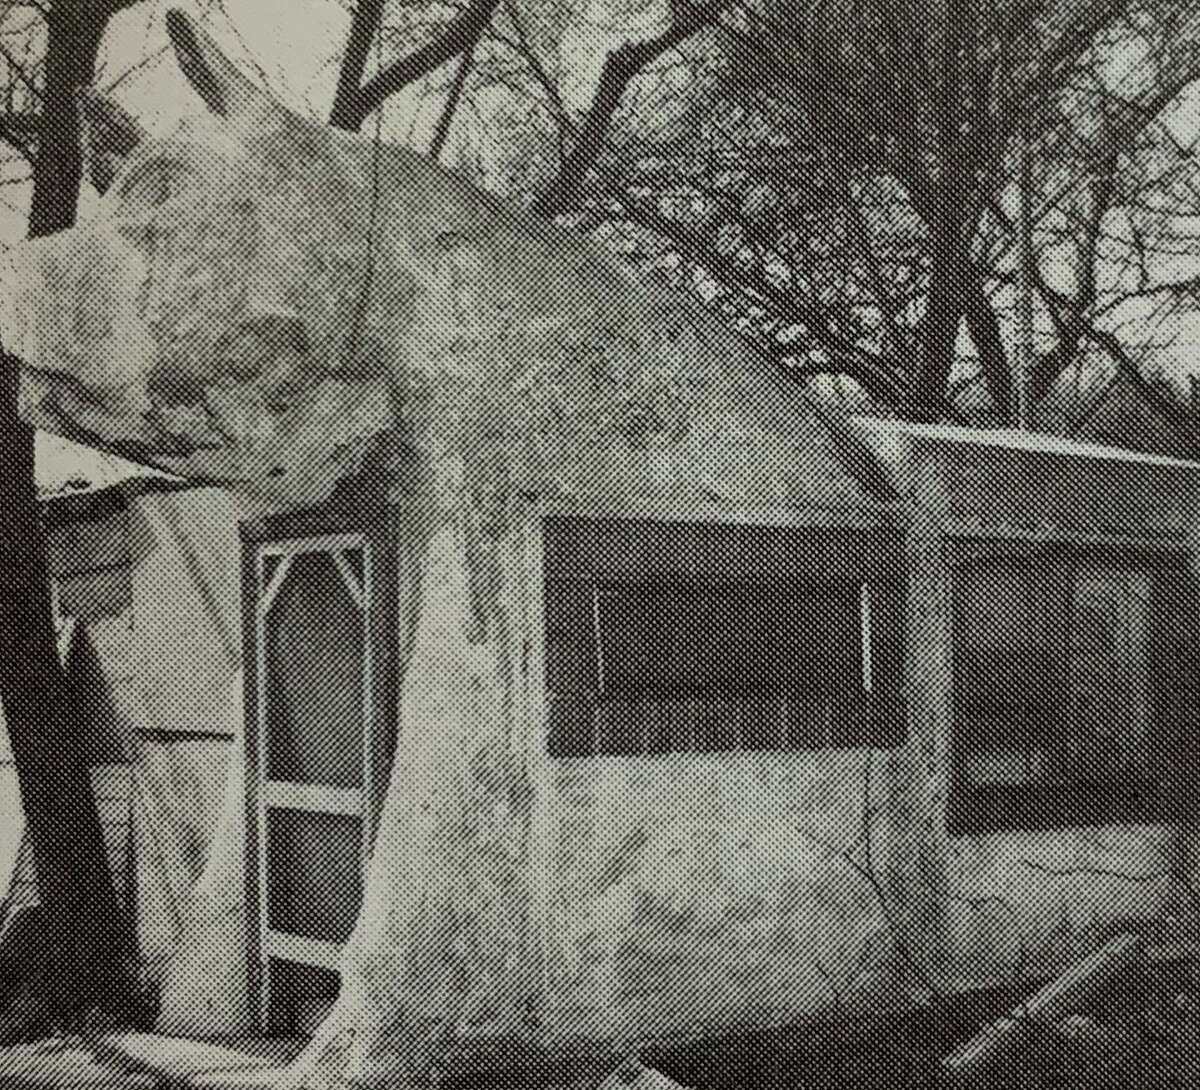 """A 1940s photo of the Big Pig structure in San Antonio, best known for its placement at the old Pig Stand diner on South Presa Street. The image appears in """"Built in the USA: American Buildings from Airports to Zoos,"""" published by the National Trust for Historic Preservation."""